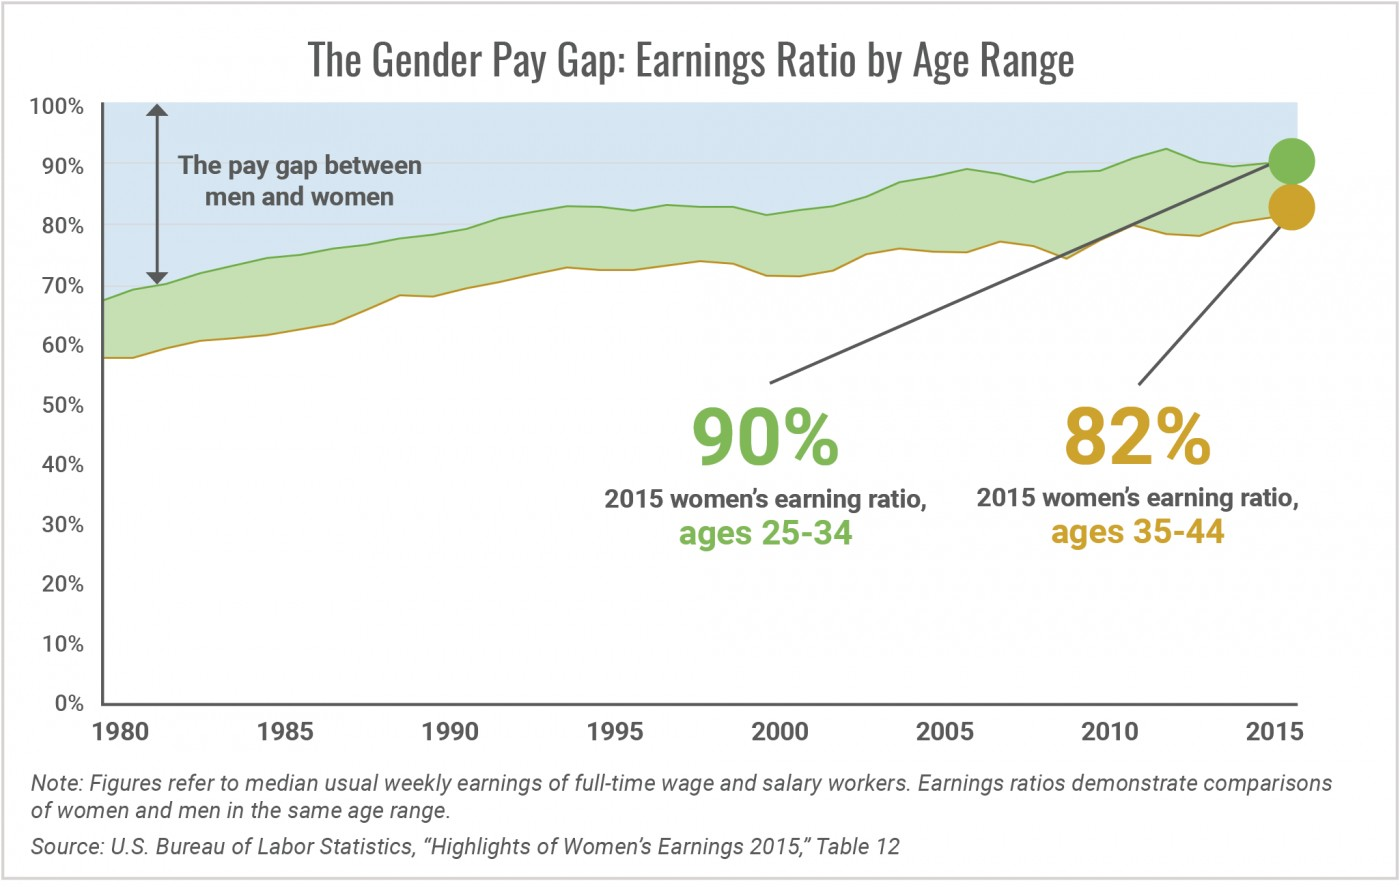 007 Research Paper The Gender Pay Earnings Ratio By Age Range1505304619 Top Gap Wage Outline In India 1400